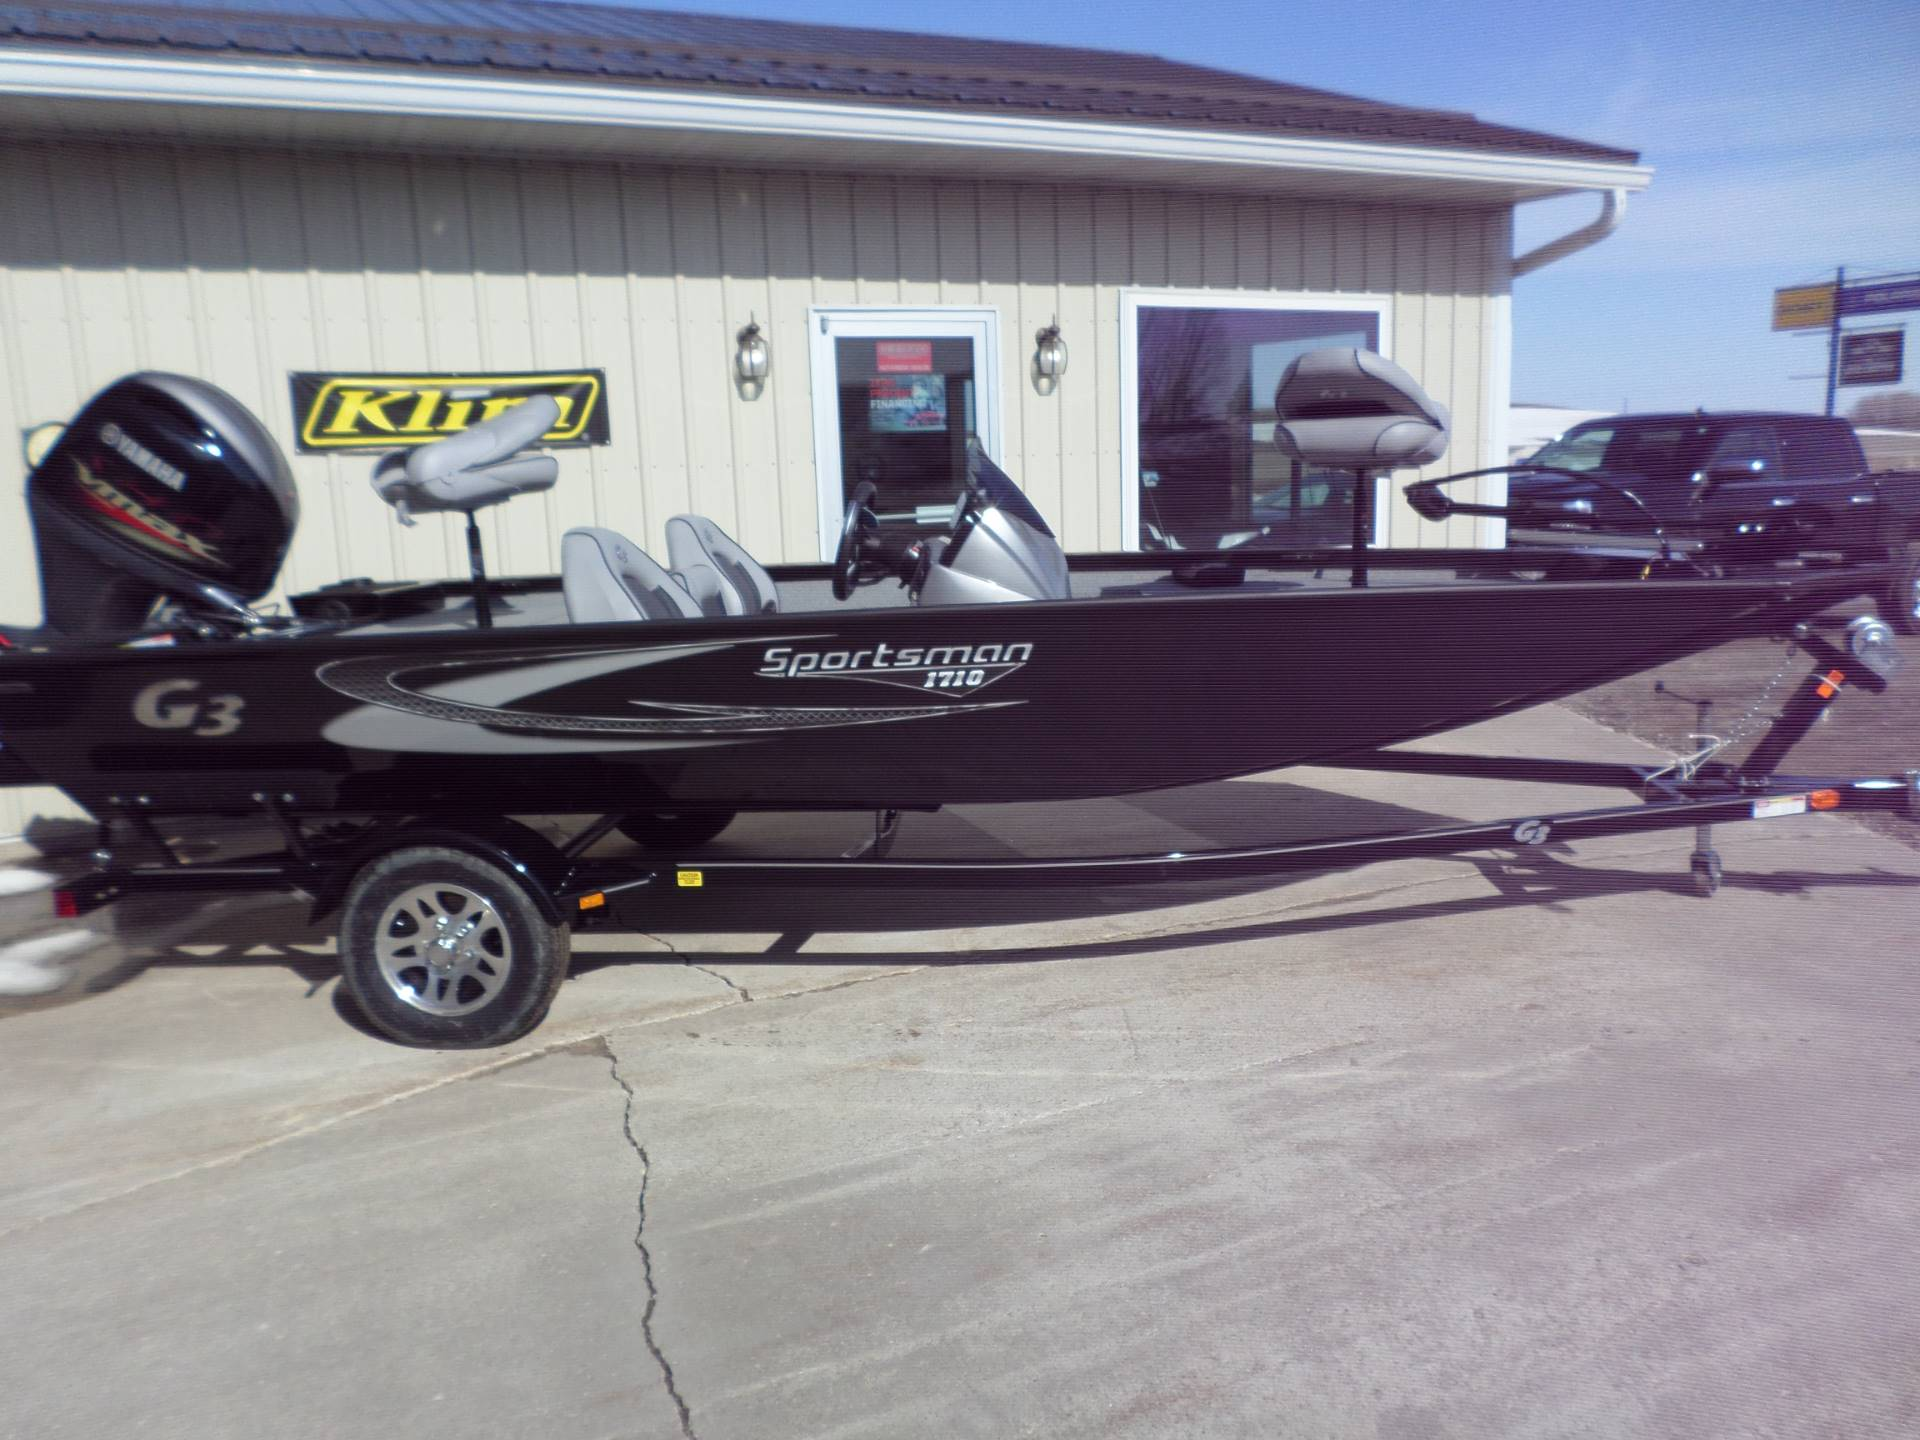 2019 G3 Sportsman 1710 in Lake Mills, Iowa - Photo 1